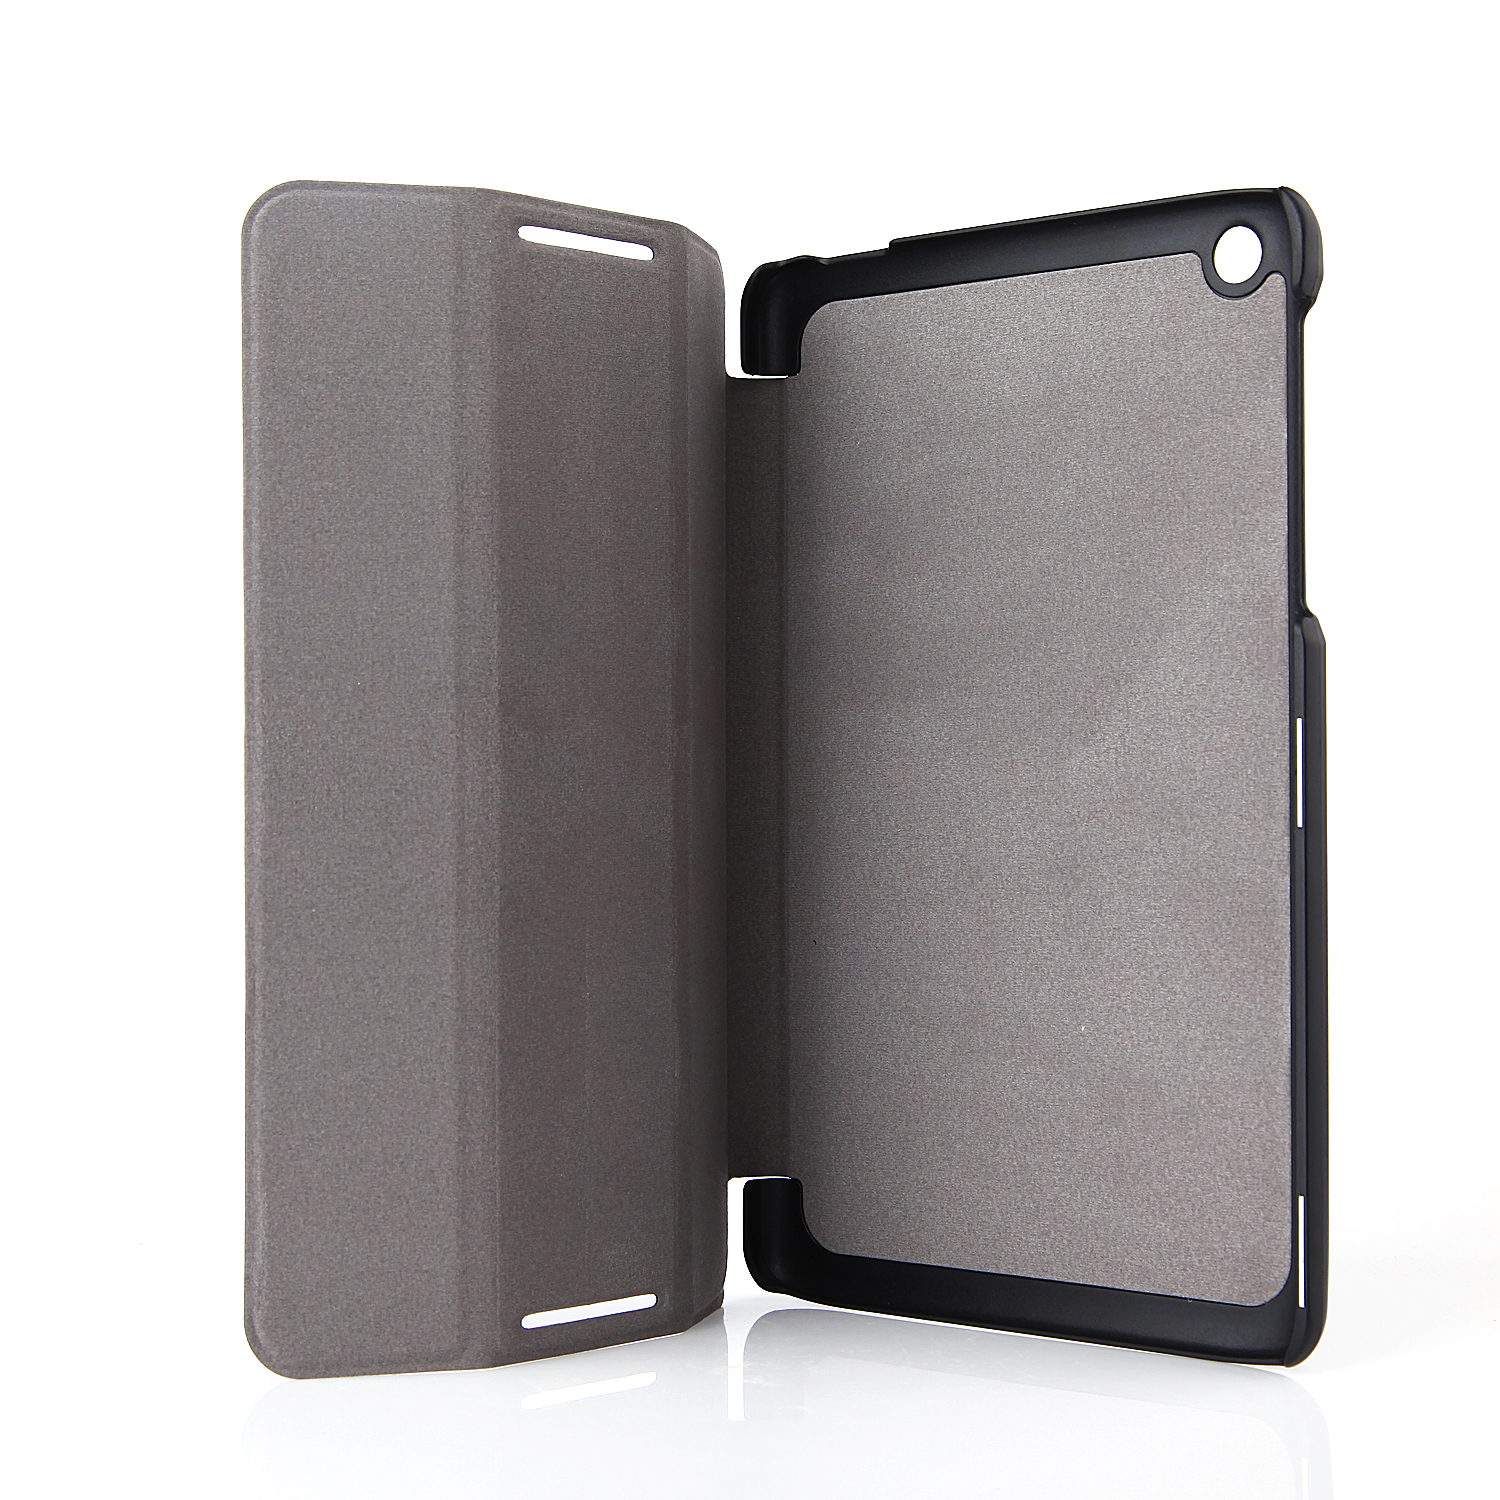 Protective PU Leather Stand Case Cover for Lenovo A8/A5500 Tablet PC Black